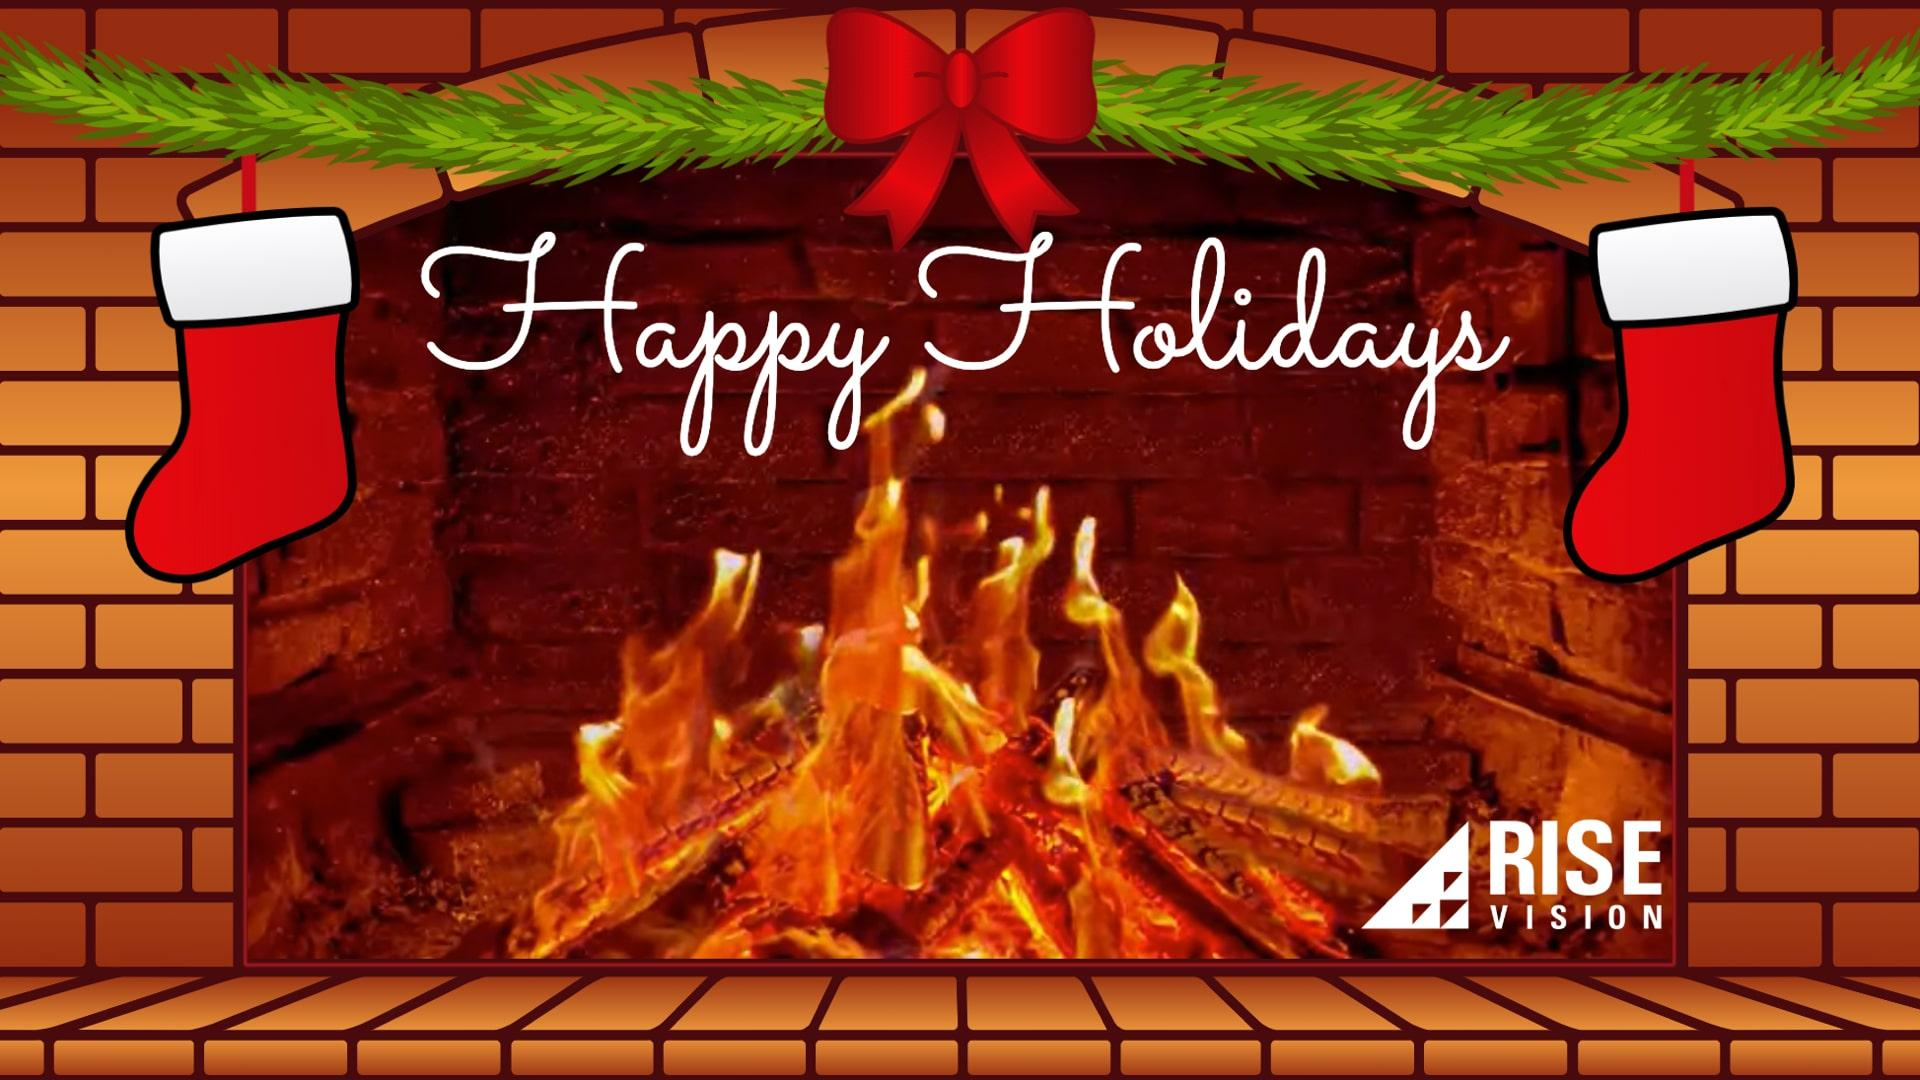 Holiday Fireplace Digital Signage Template